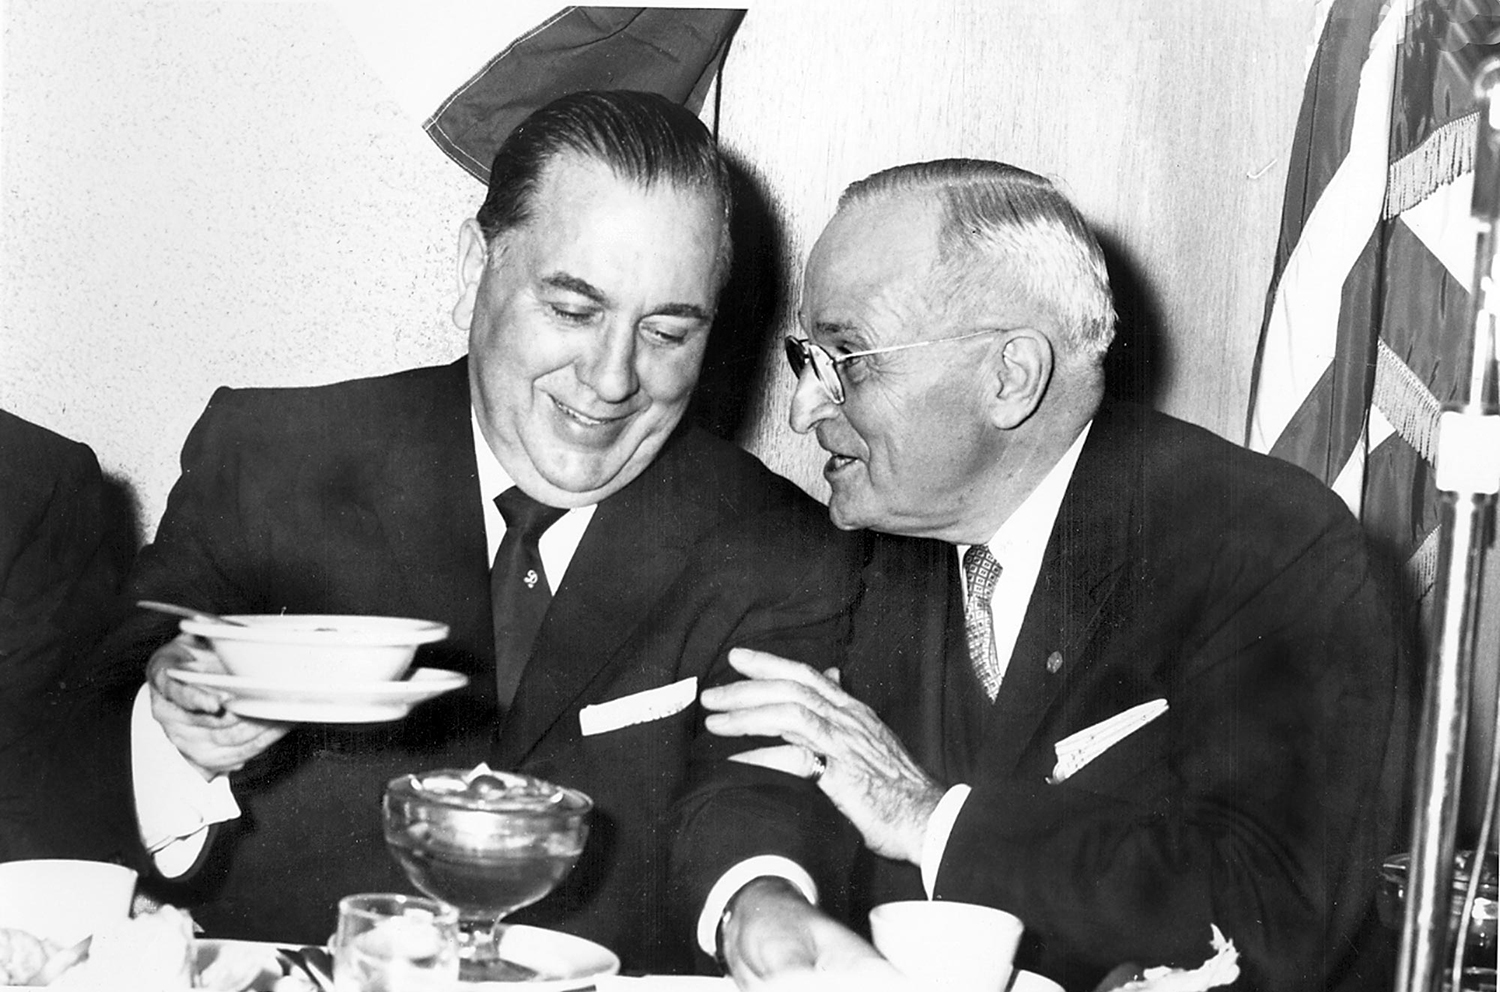 Chicago Mayor Richard Daley, left, passes the salad dressing to former President Harry S. Truman during a Democratic event at the Hotel St. Nicholas Oct. 8, 1959. [Bill Hagen/The State Journal-Register]